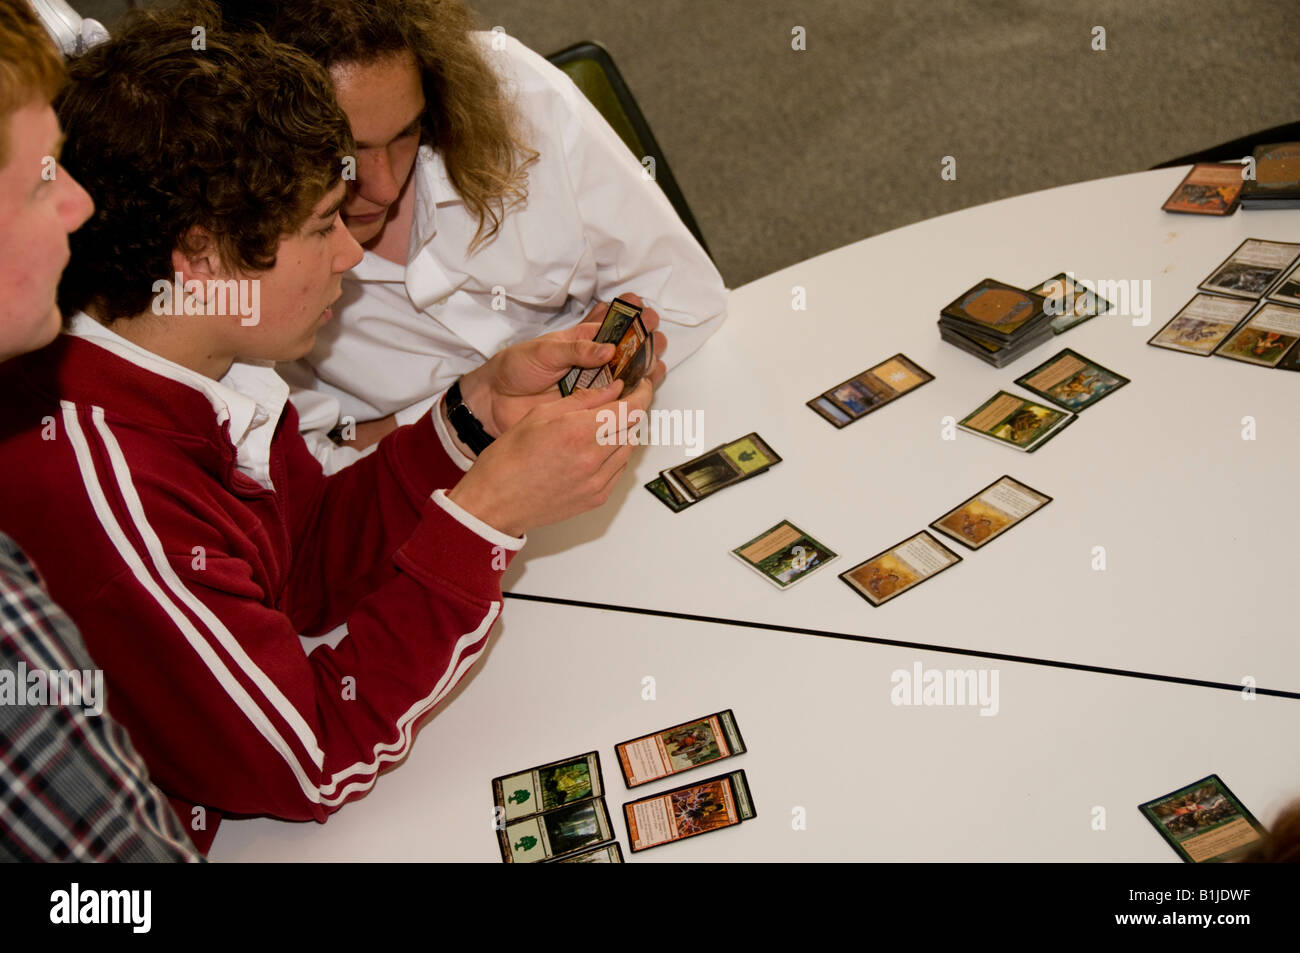 Two Teenage boys playing MAGIC THE GATHERING collectible card game - Stock Image